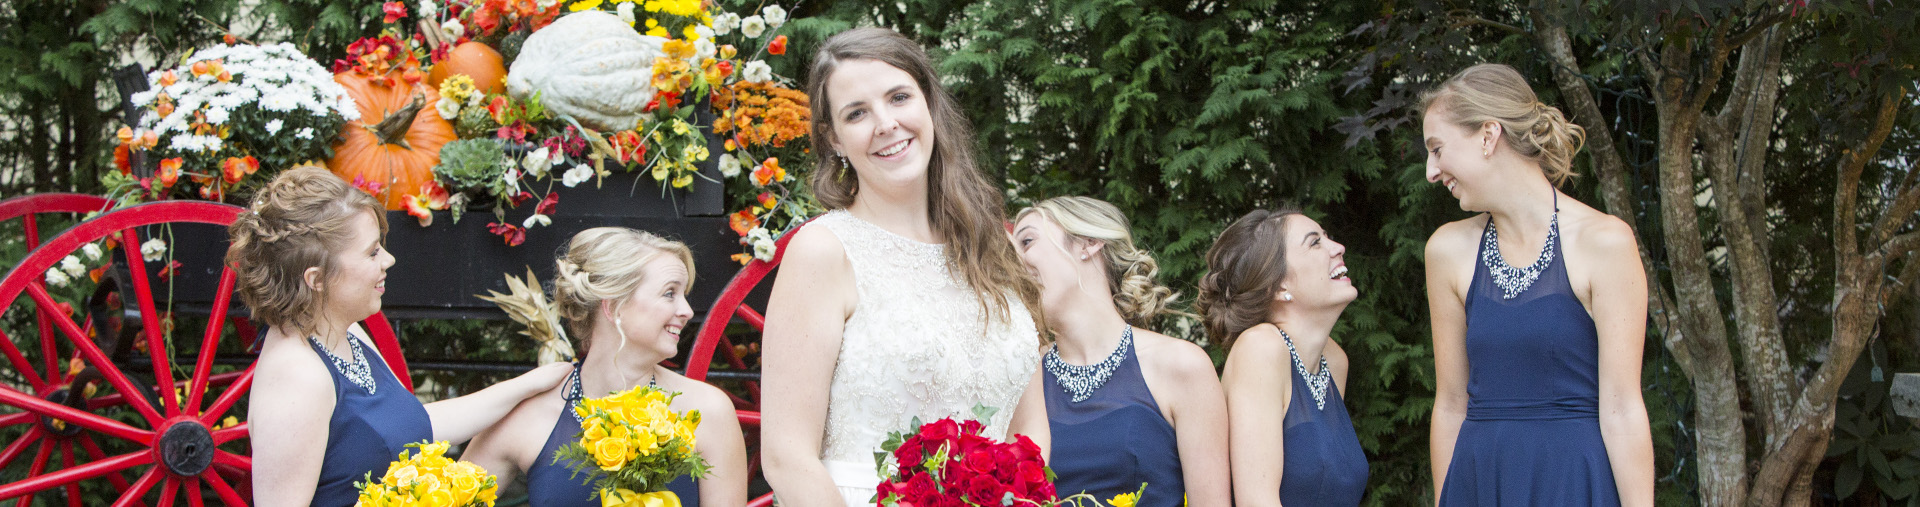 A bride poses with her bridesmaids on her wedding day at Butternut Farm